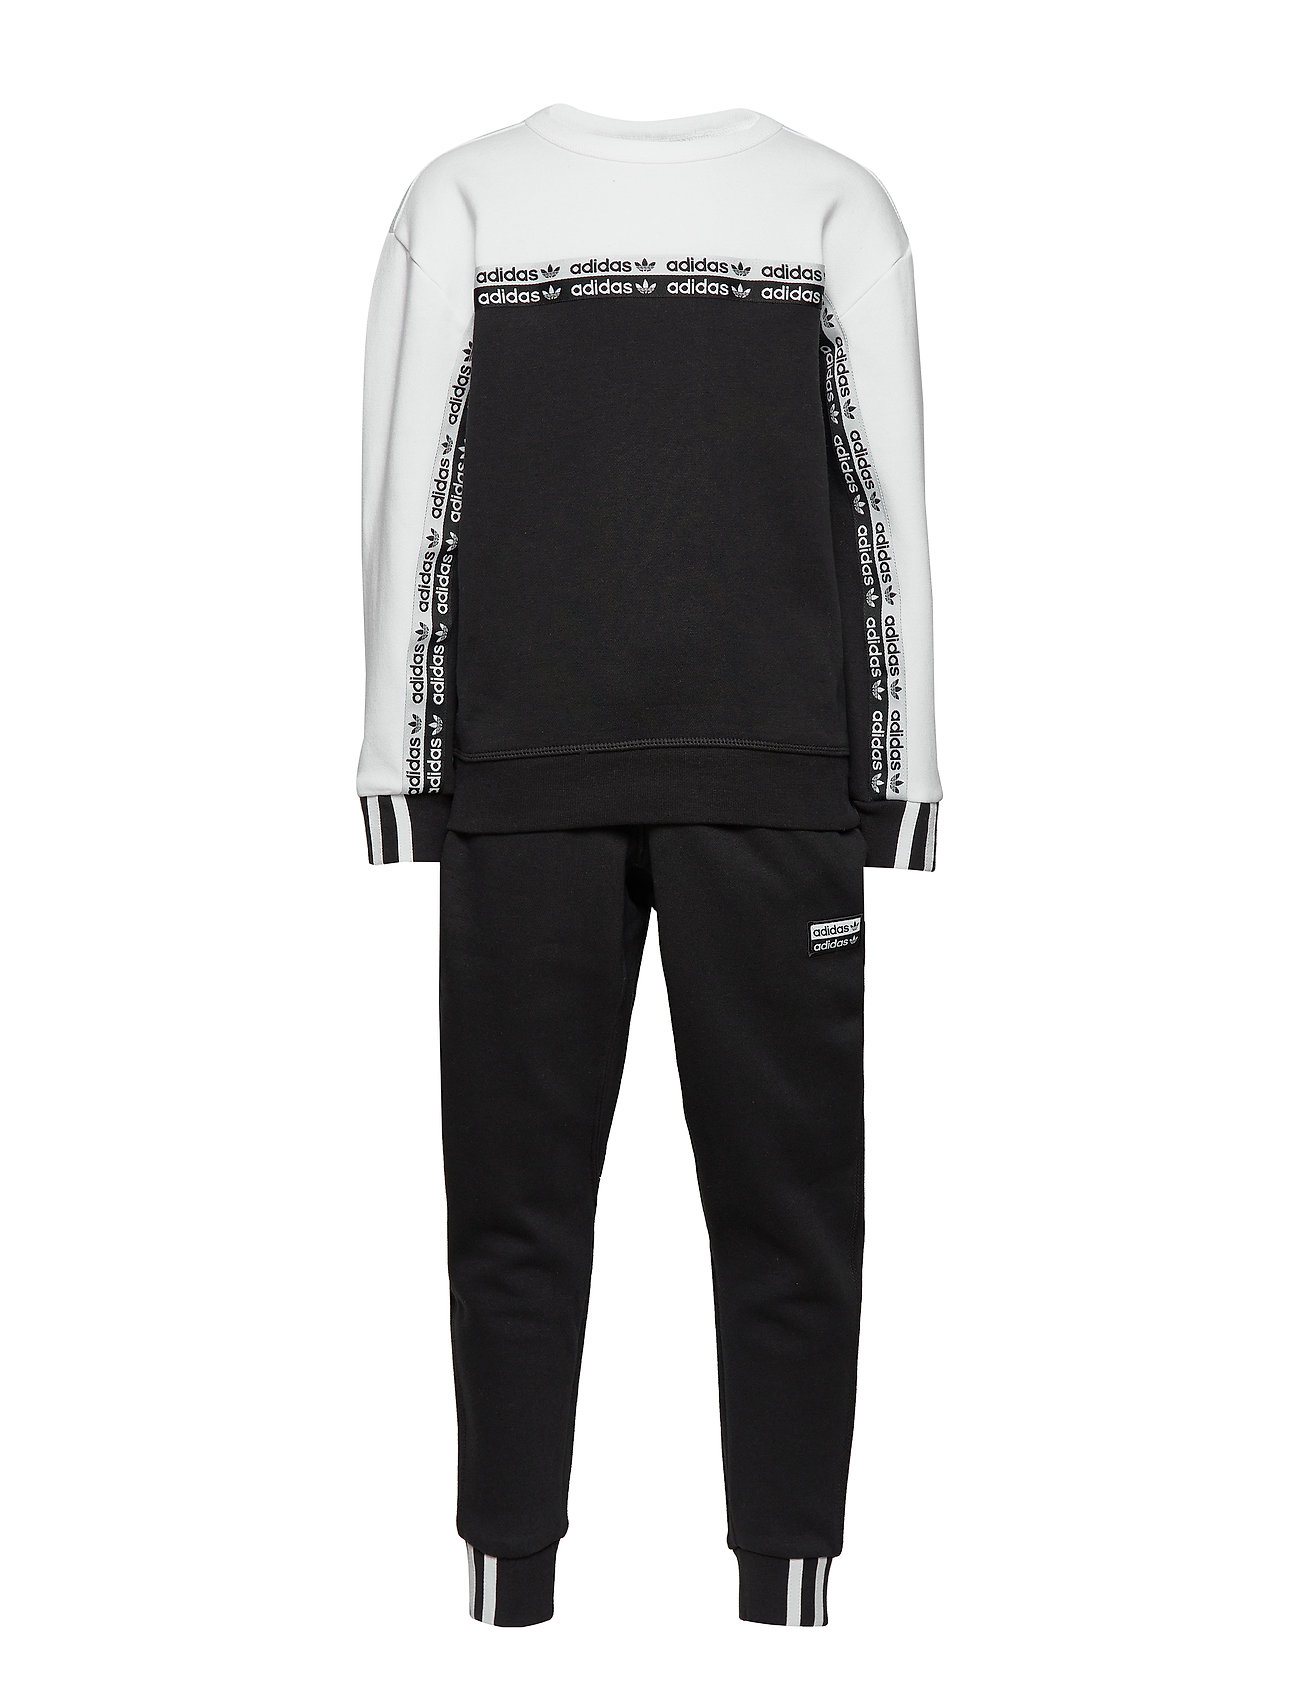 adidas Originals CREW - BLACK/WHITE